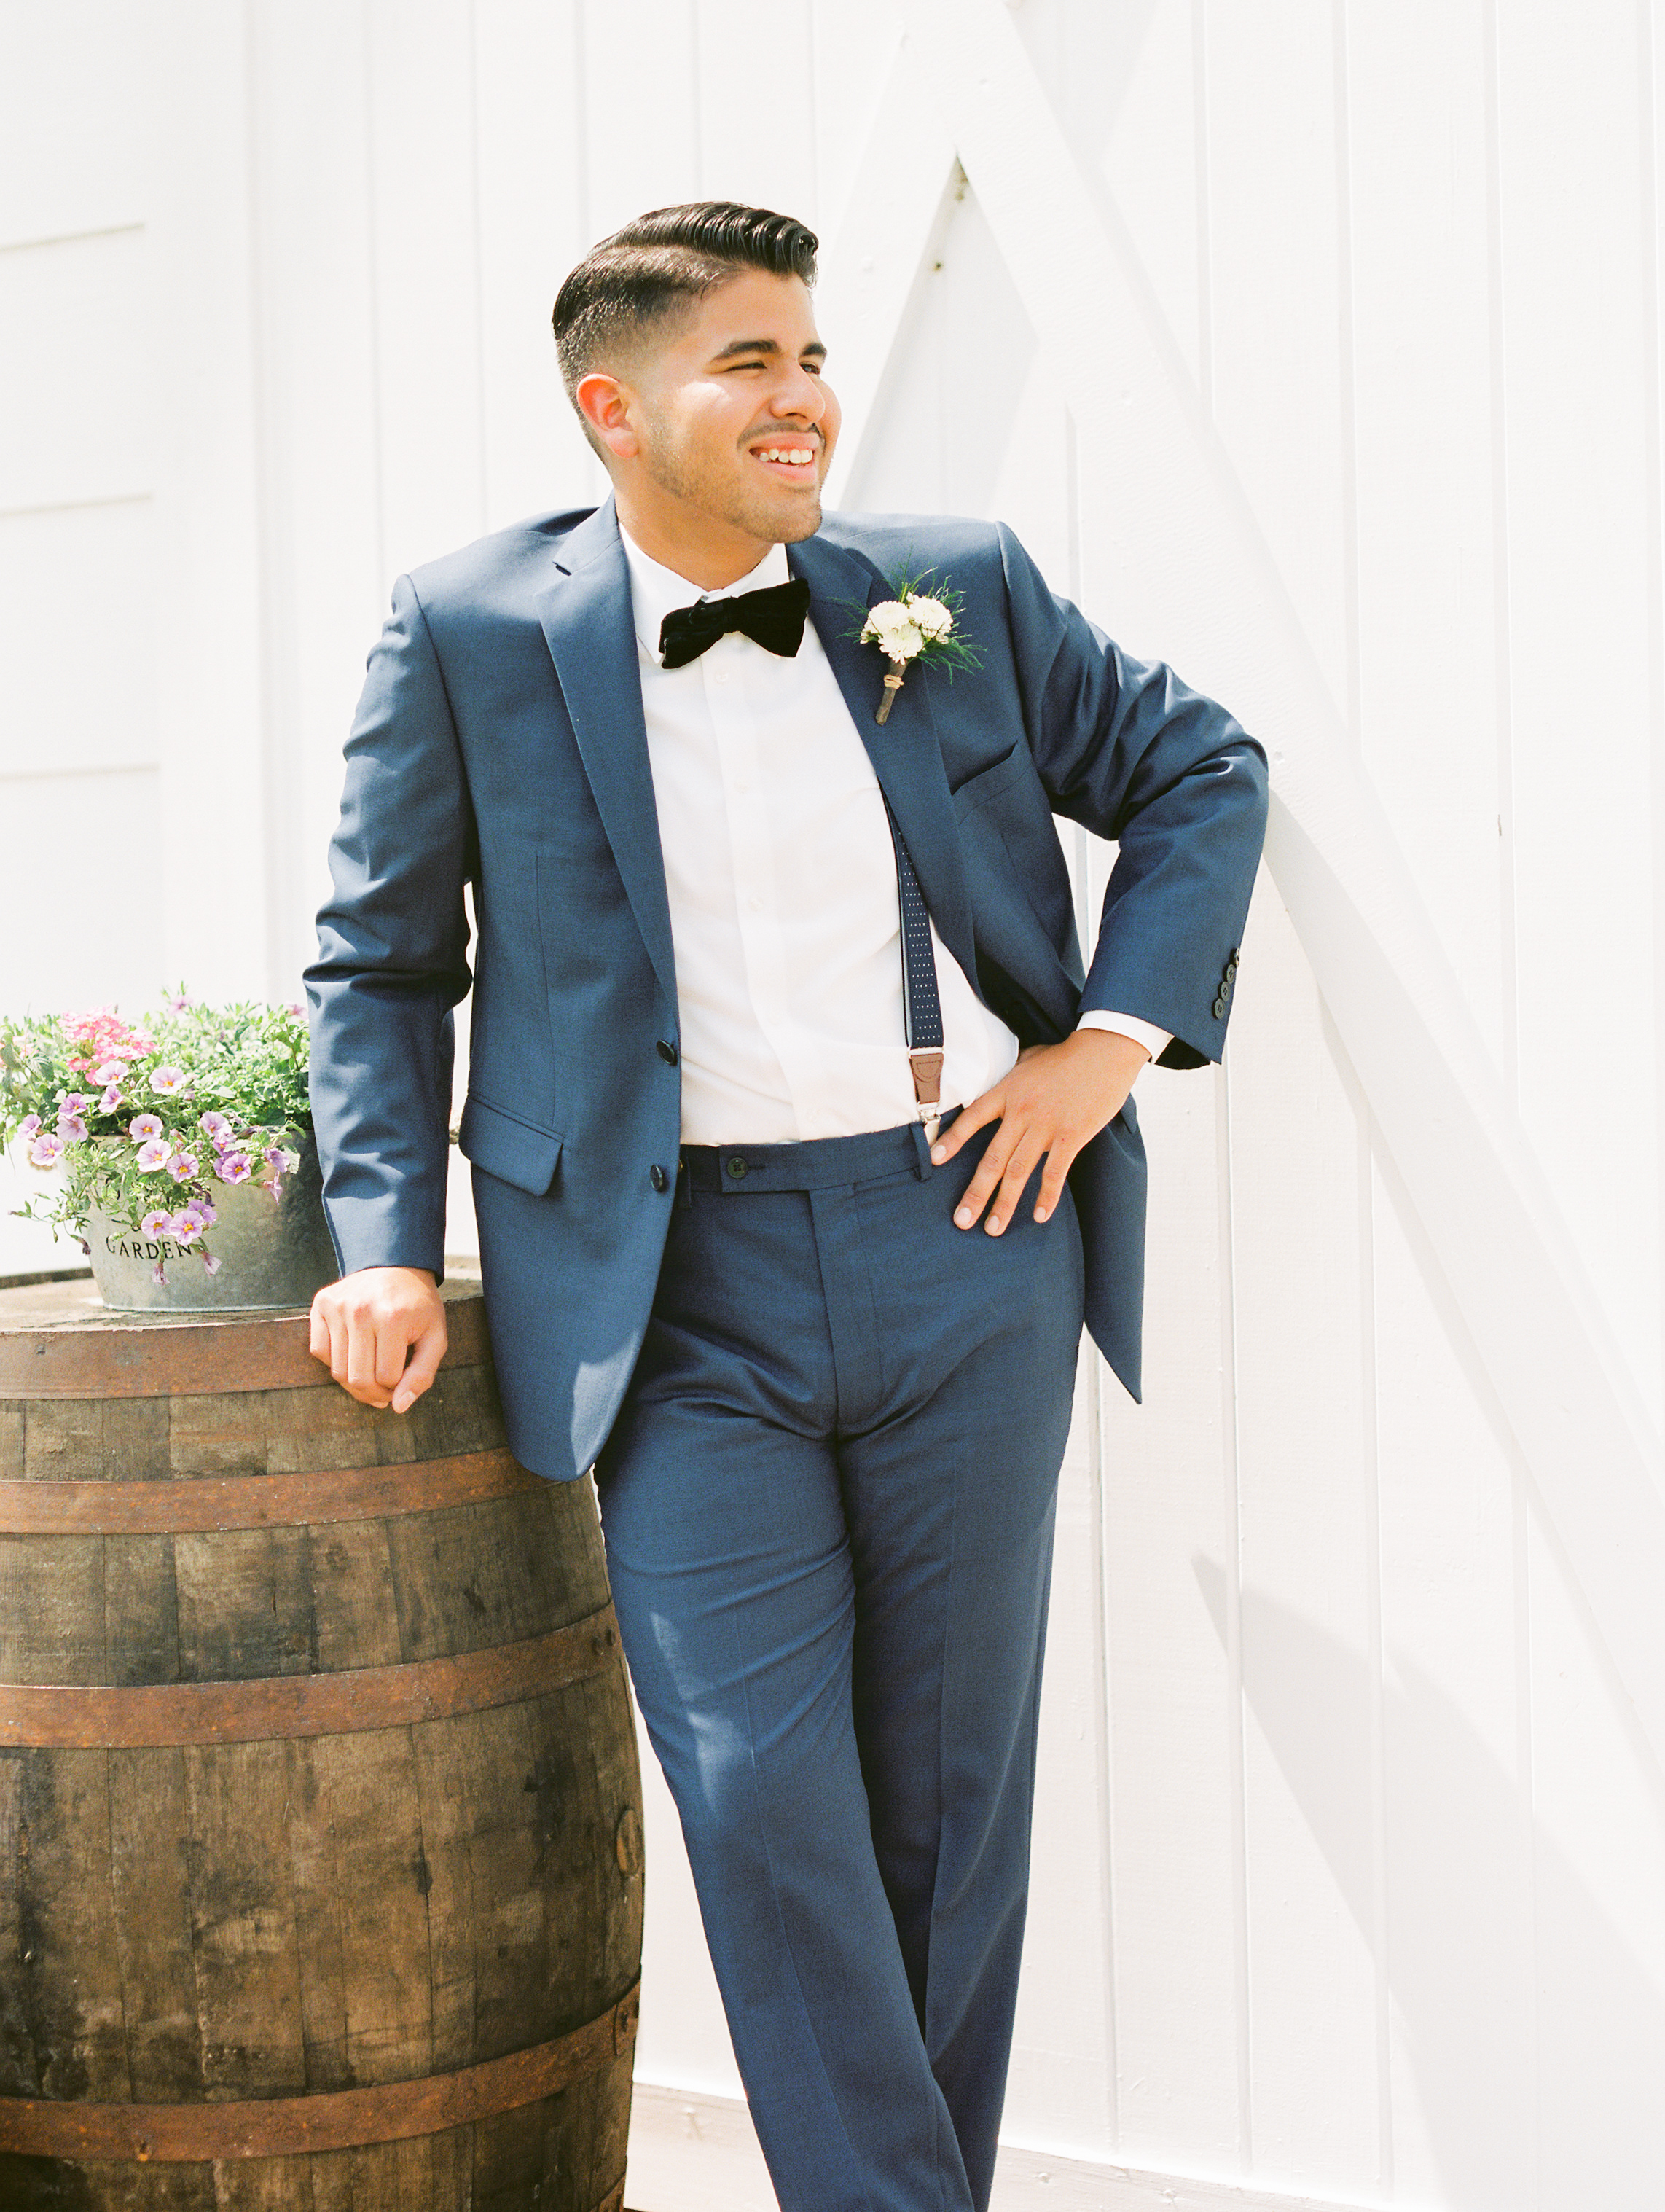 Sterling stables, brevard county FL wedding groom photo